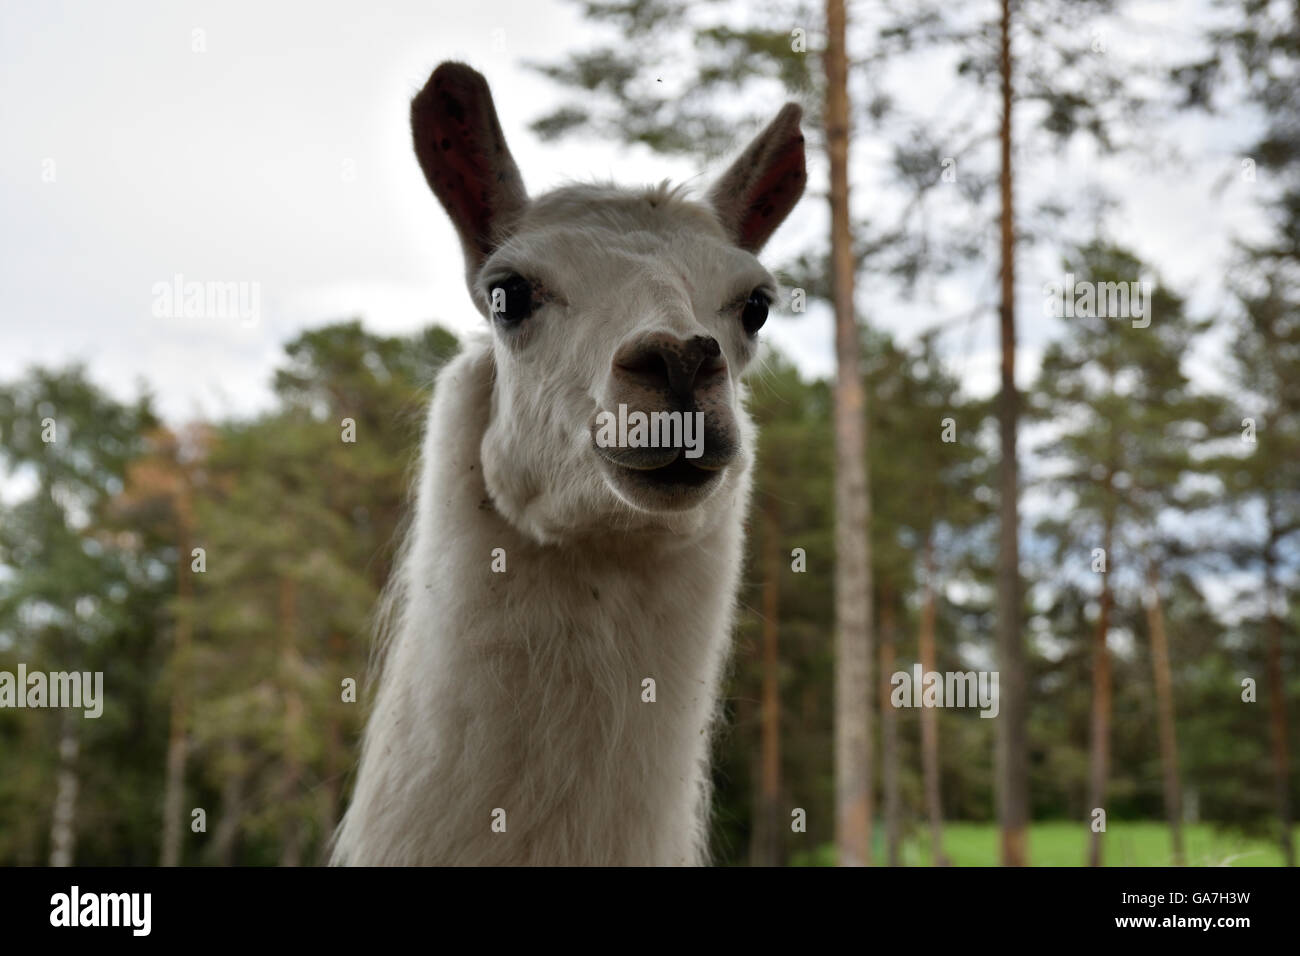 Head of a White llama (lama glama) in a park in the North of Sweden. - Stock Image